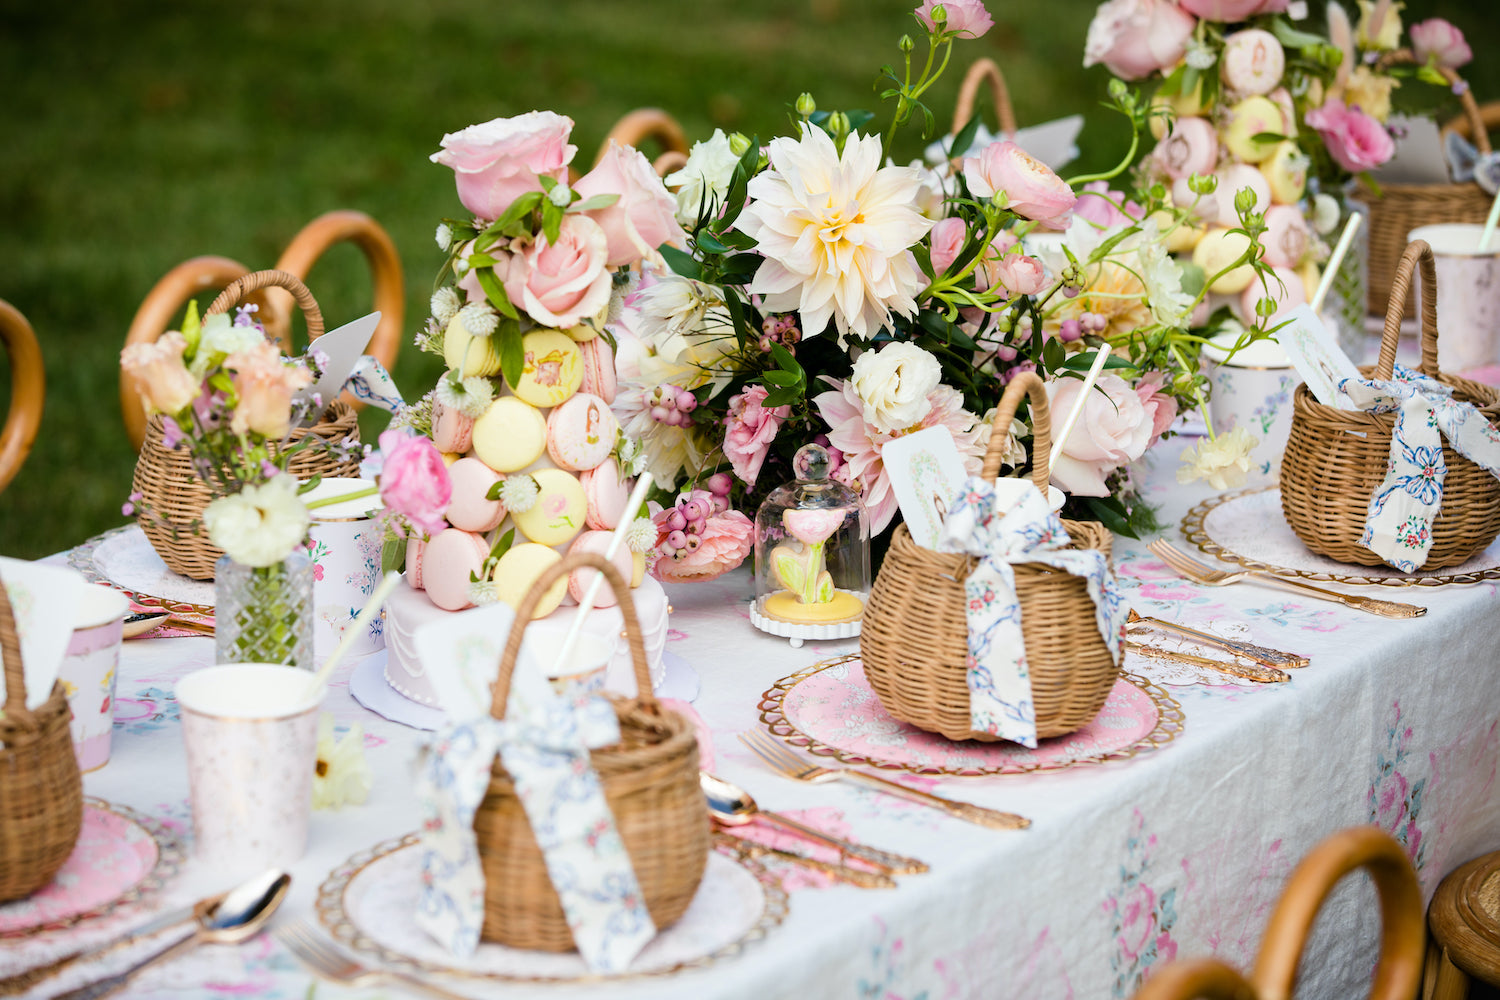 Le Jardin de Gigi - Flower garden children's birthday party inspiration - Celebrating childhood - Charlotte sy Dimby